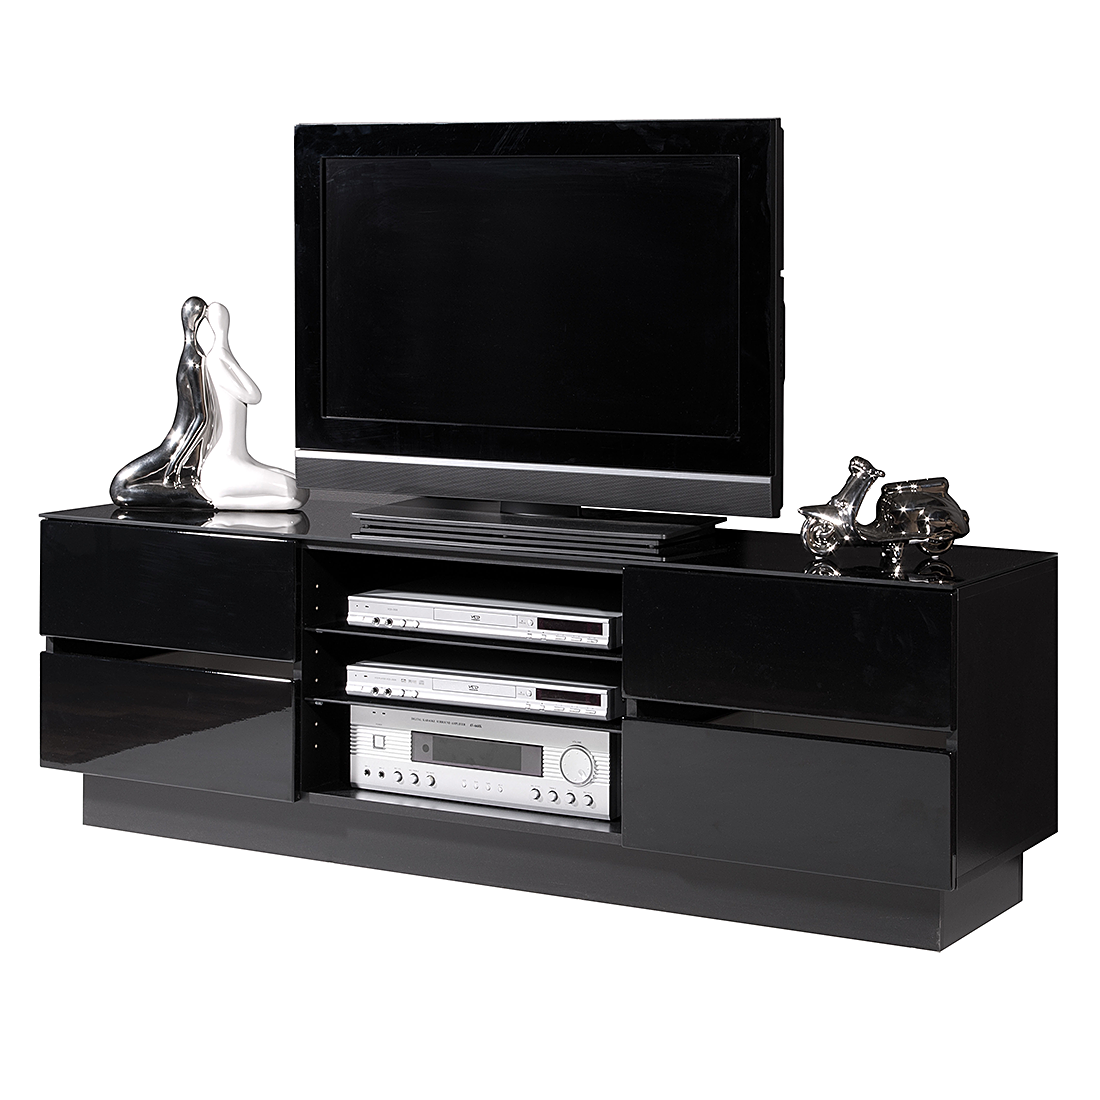 tv lowboard schwarz inspirierendes design f r wohnm bel. Black Bedroom Furniture Sets. Home Design Ideas